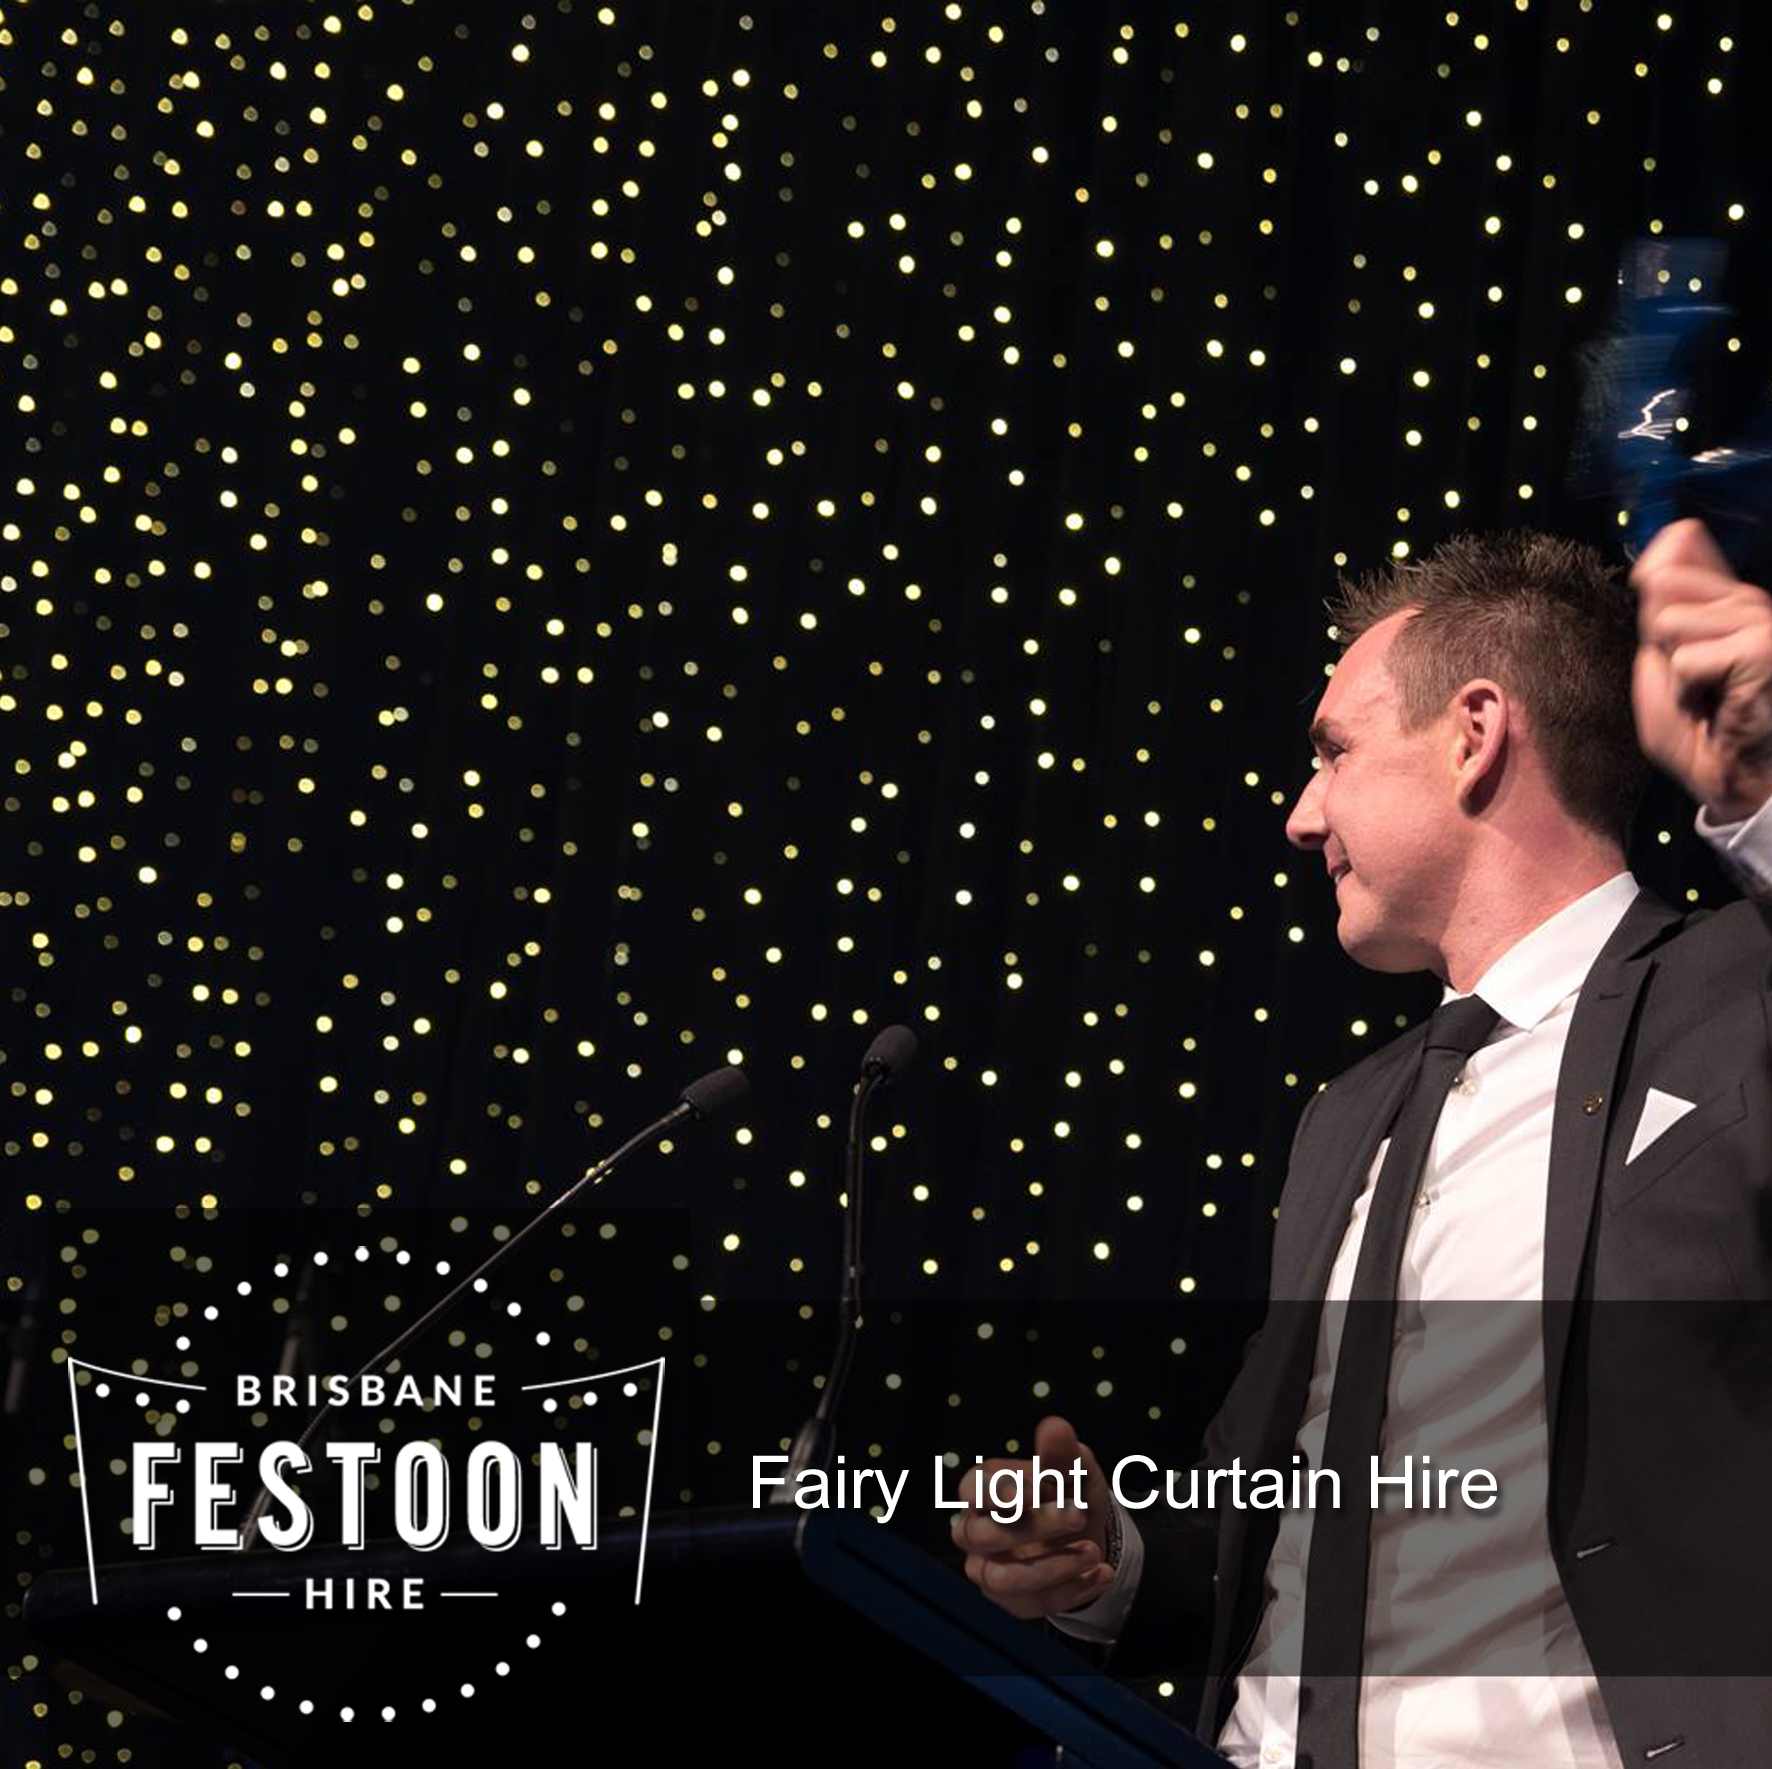 Brisbane Festoon Hire - Fairy Light Curtain Hire 2.jpg